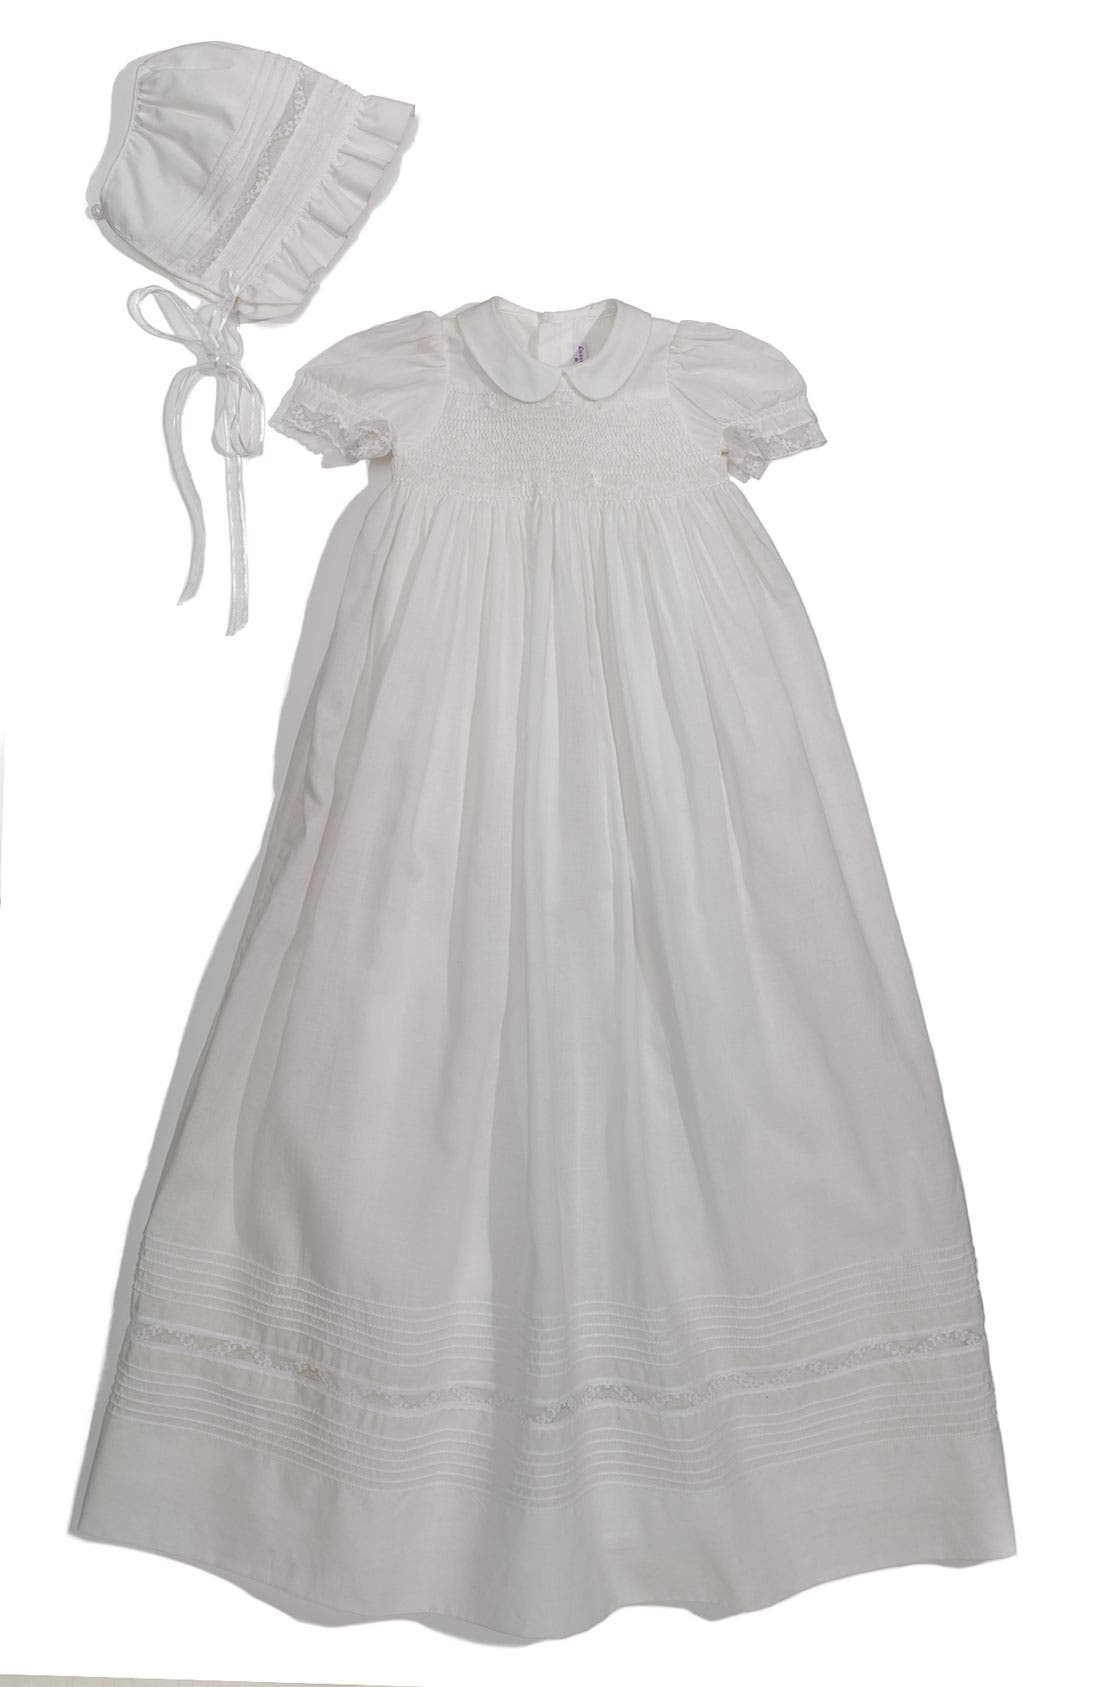 Alternate Image 1 Selected - Kissy Kissy Christening Gown (Infant)